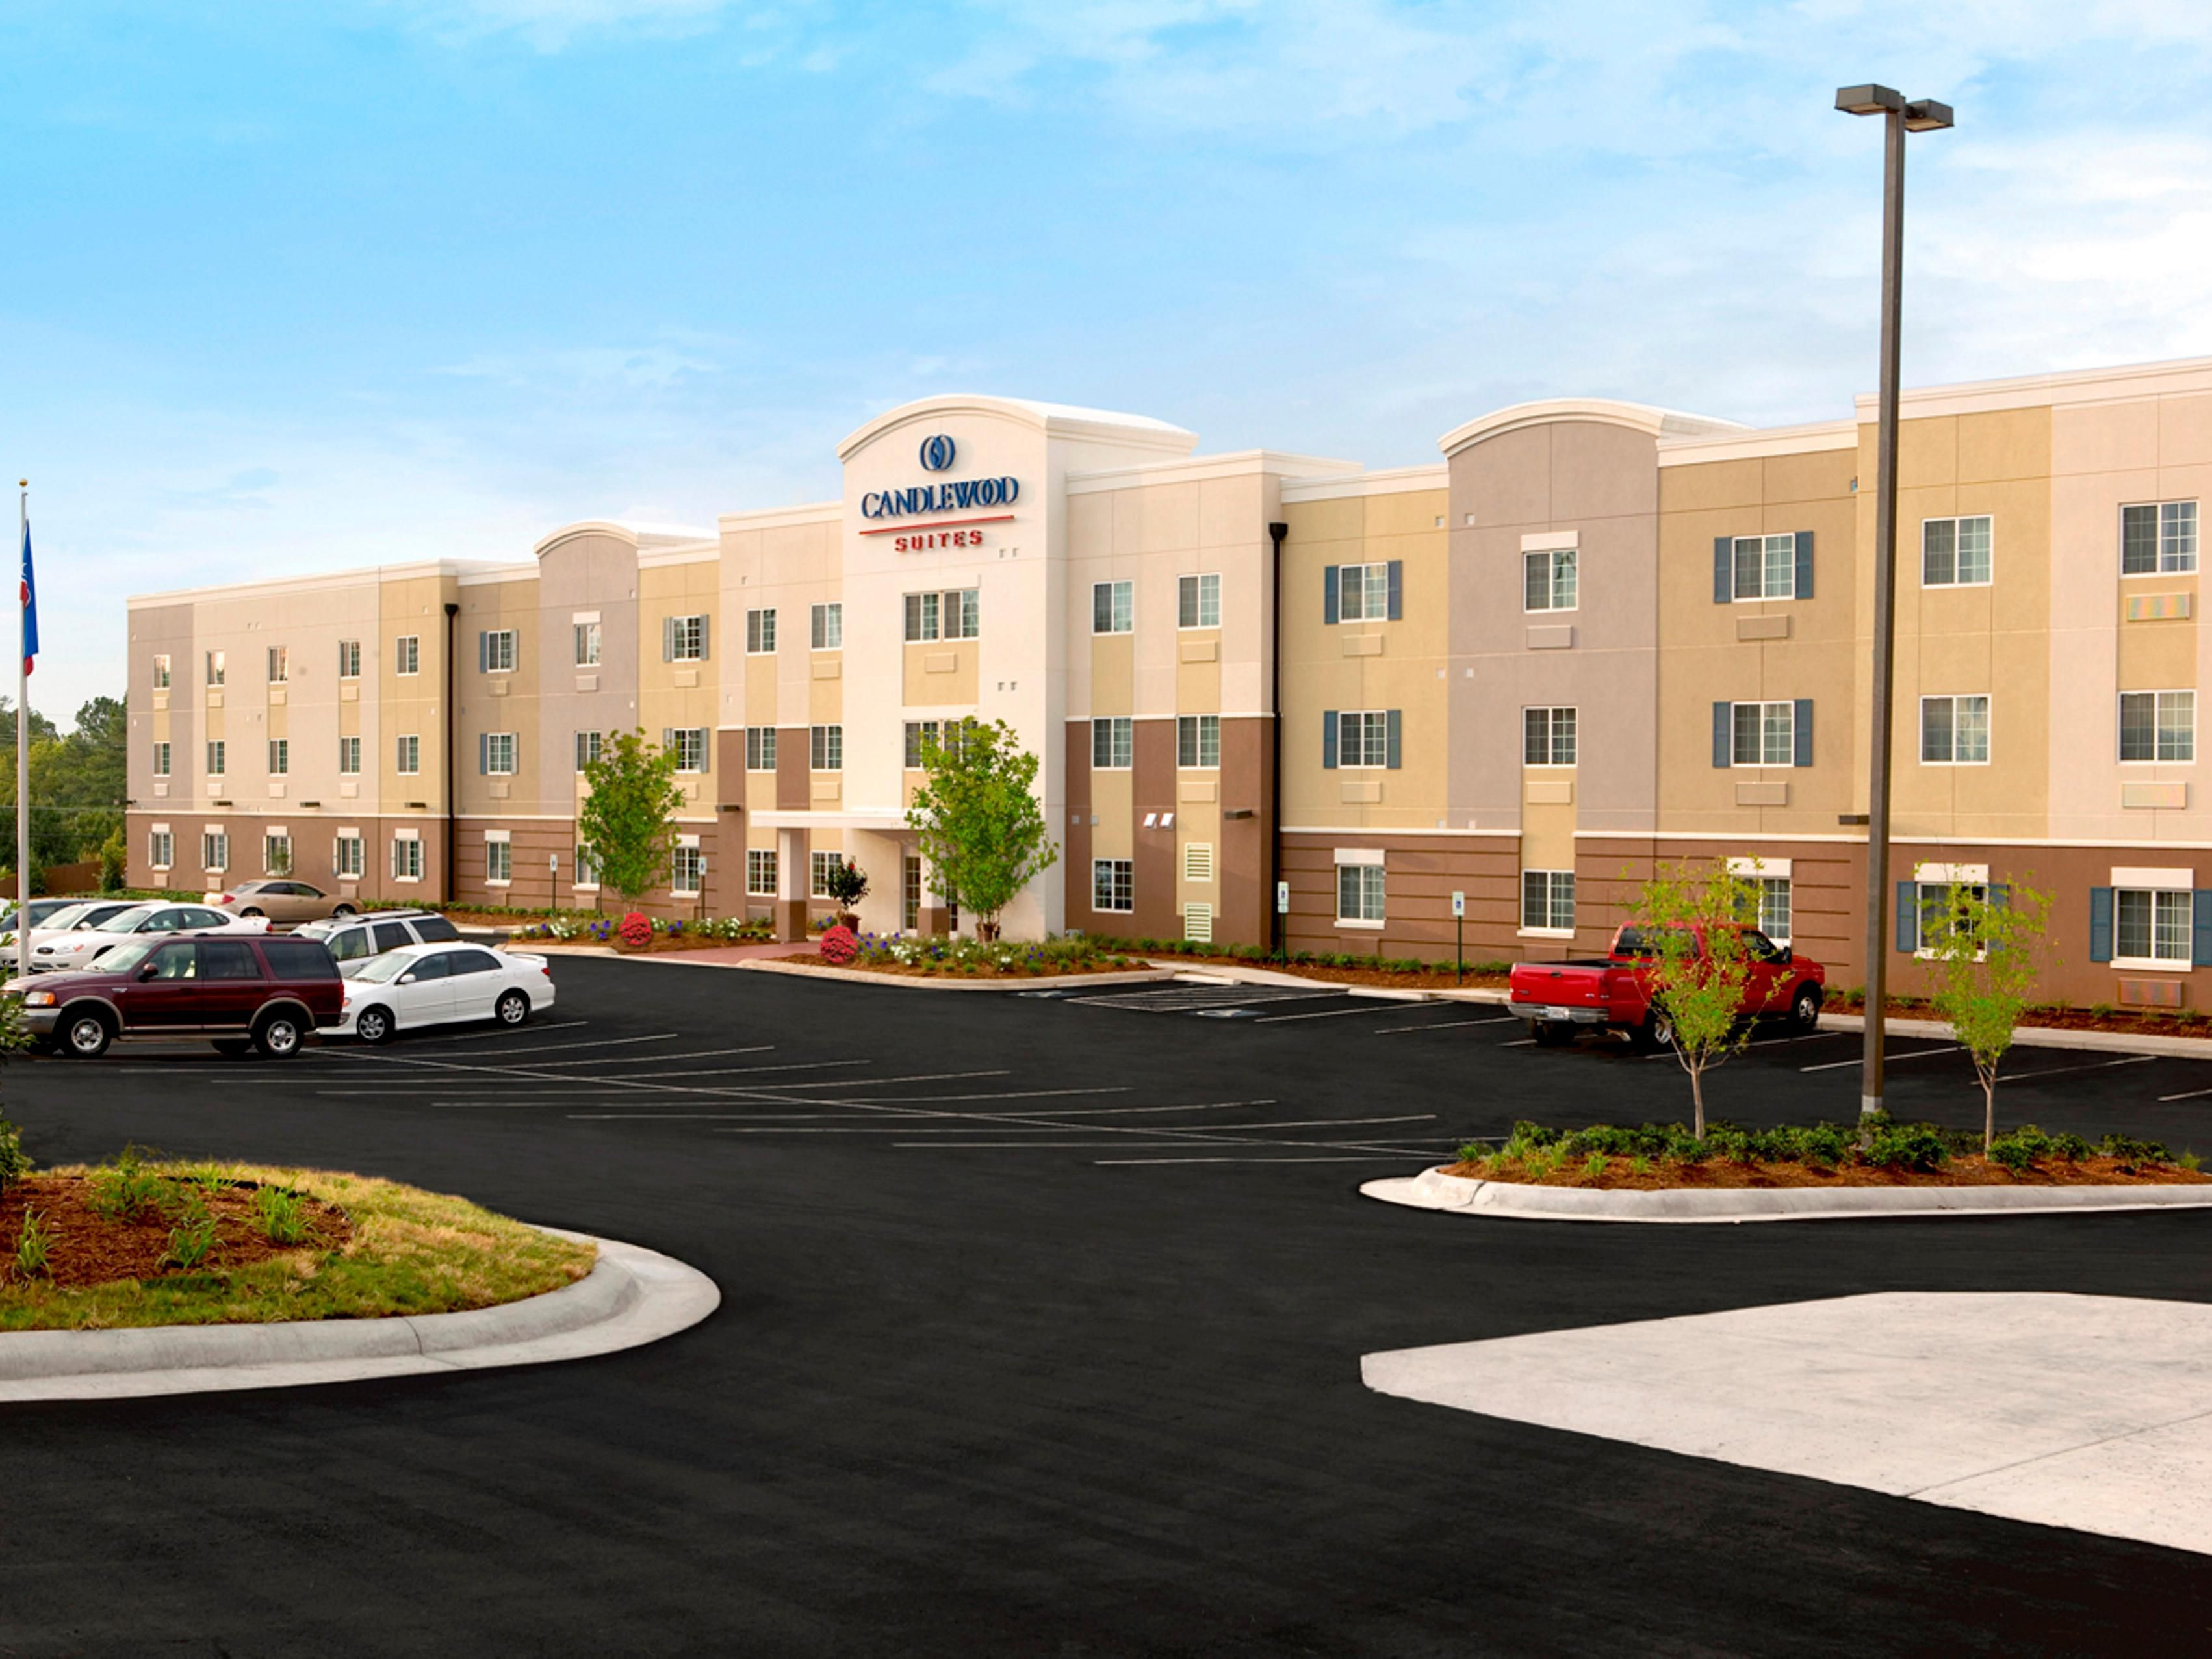 Kenedy Hotels Candlewood Suites Extended Stay Hotel In Texas